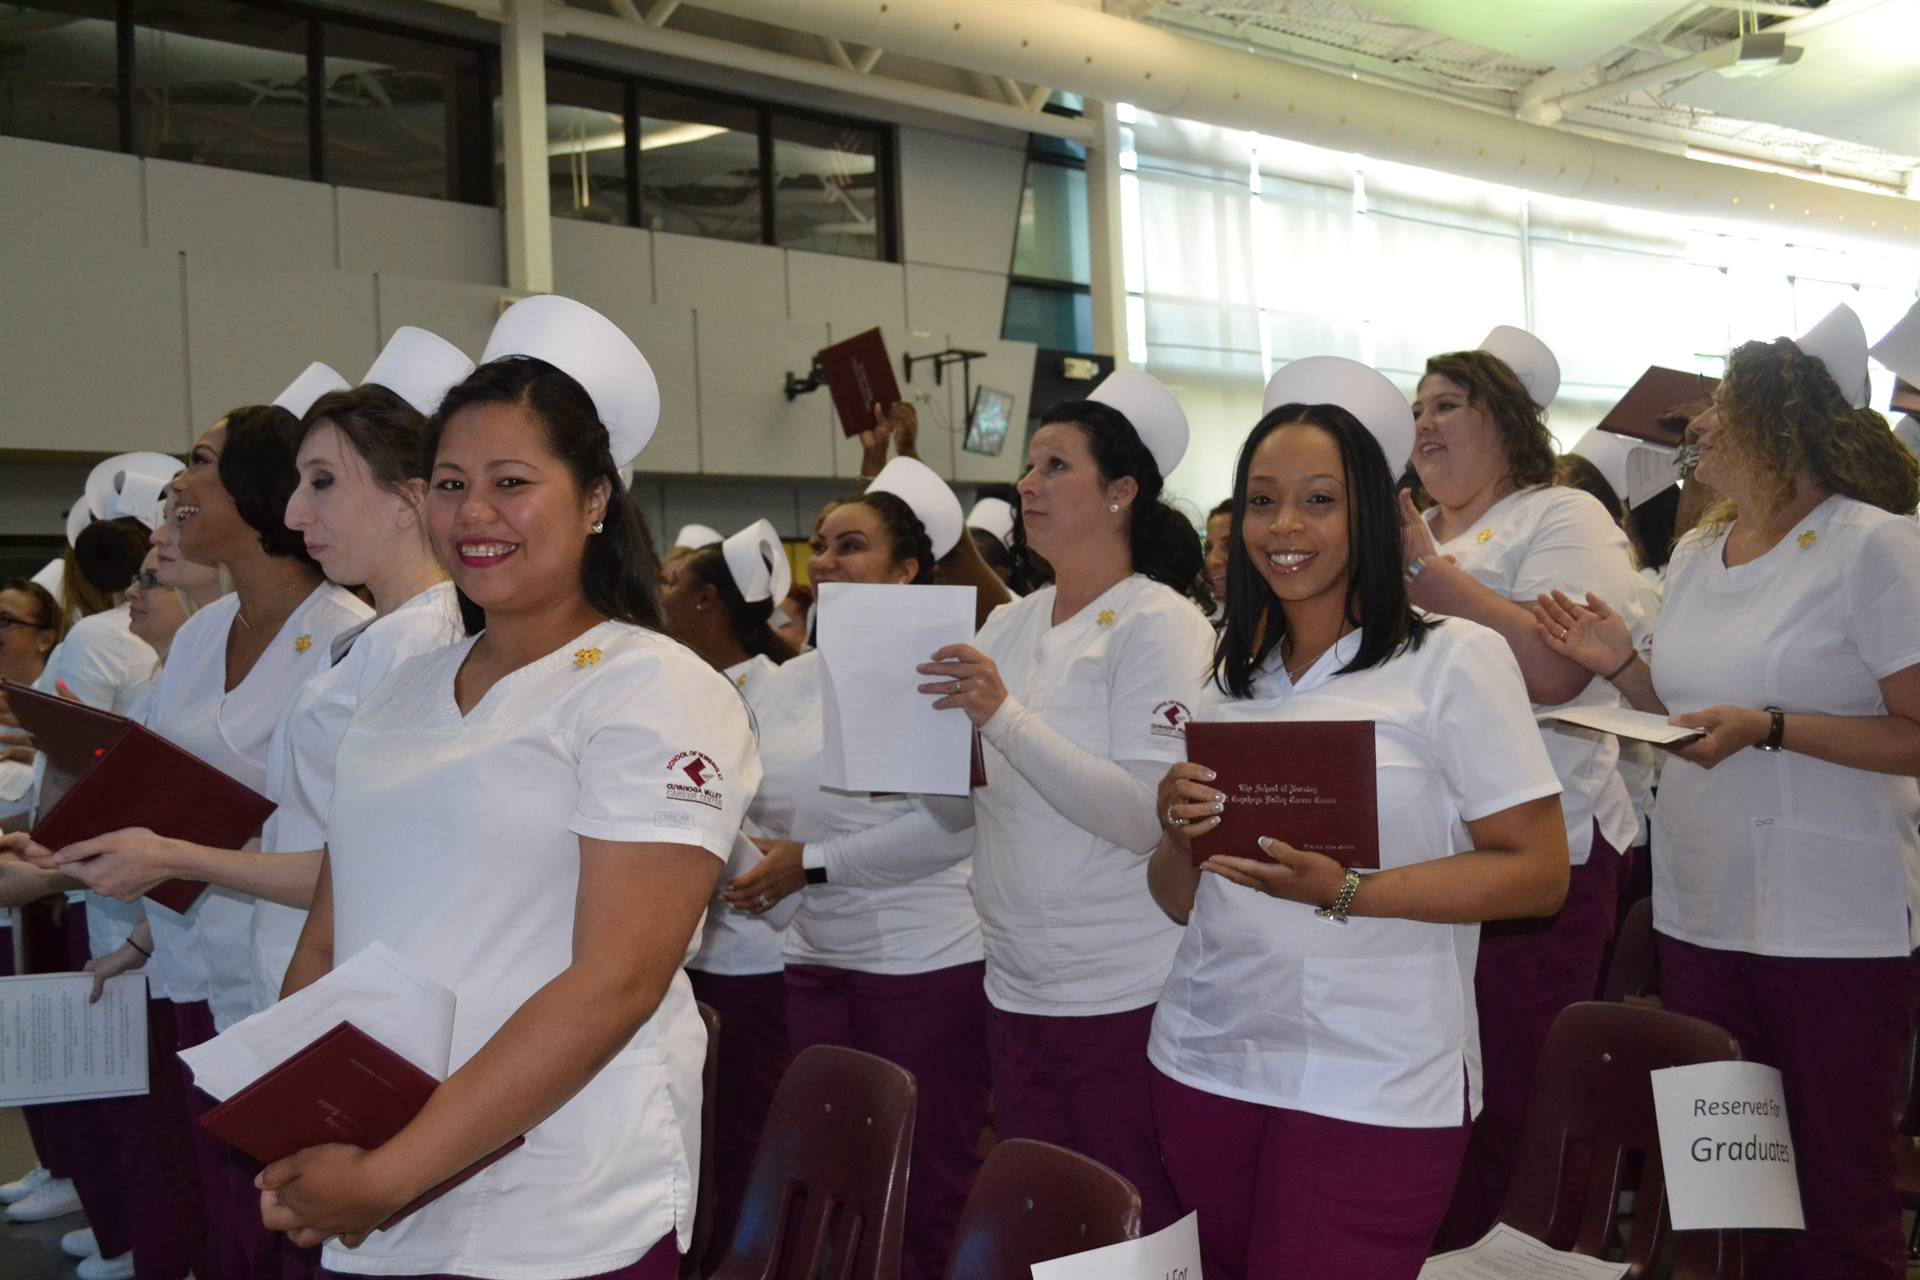 Nursing students with diplomas